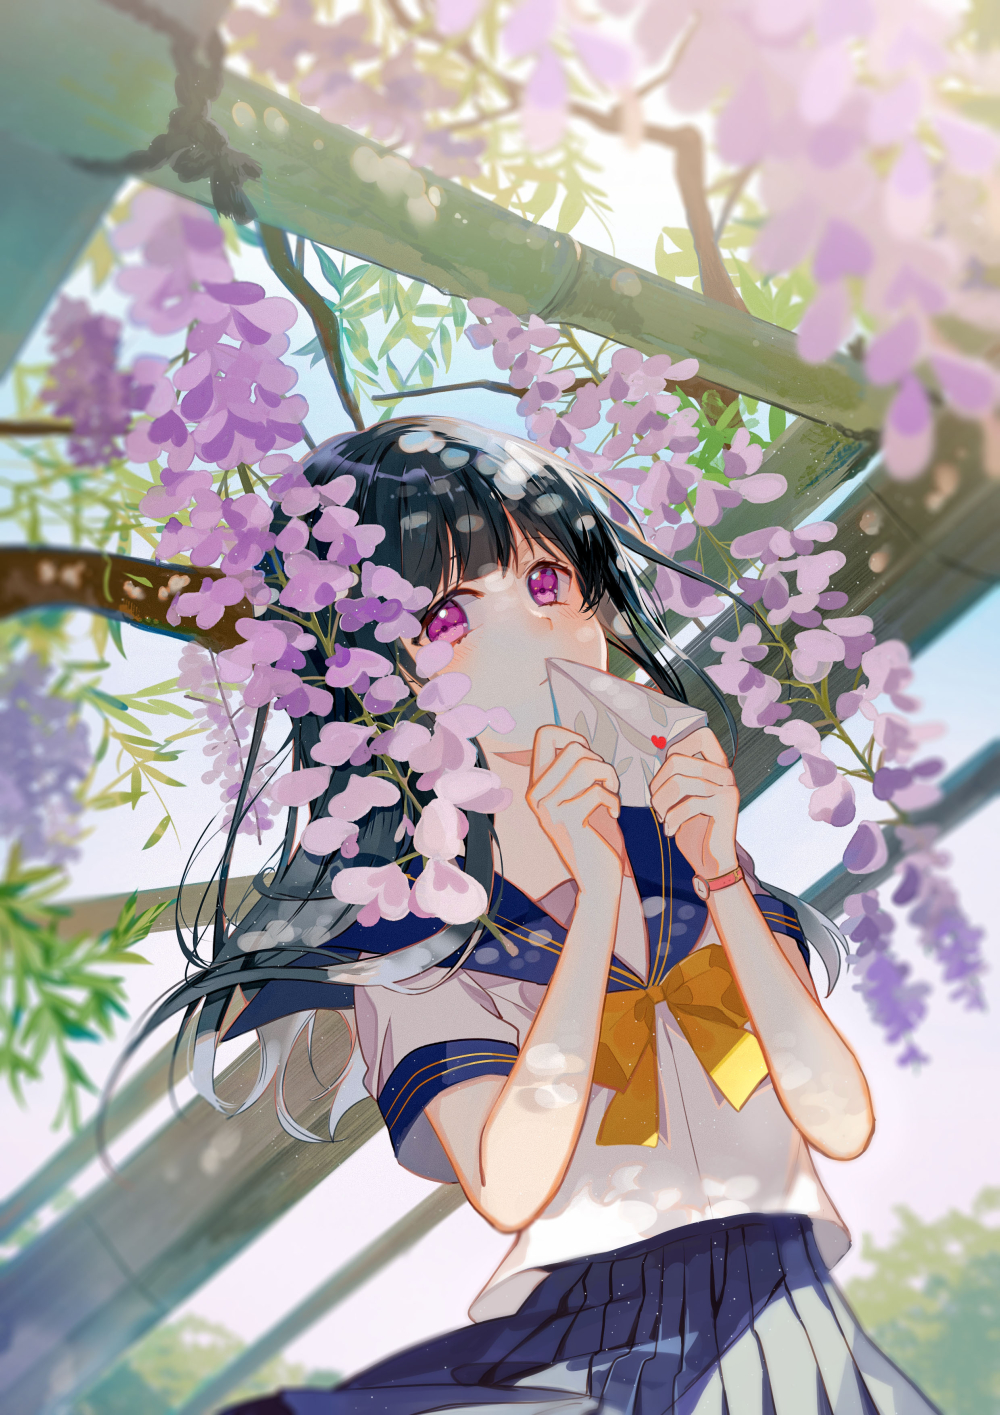 1girl bangs black_hair blue_skirt blue_sky bow bowtie covering_mouth day flower gradient_hair heart highres holding holding_letter letter long_hair looking_at_viewer love_letter multicolored_hair original outdoors pink_eyes pleated_skirt school_uniform serafuku short_sleeves skirt sky sunlight tatsumi3 watch watch wisteria yellow_bow yellow_bowtie